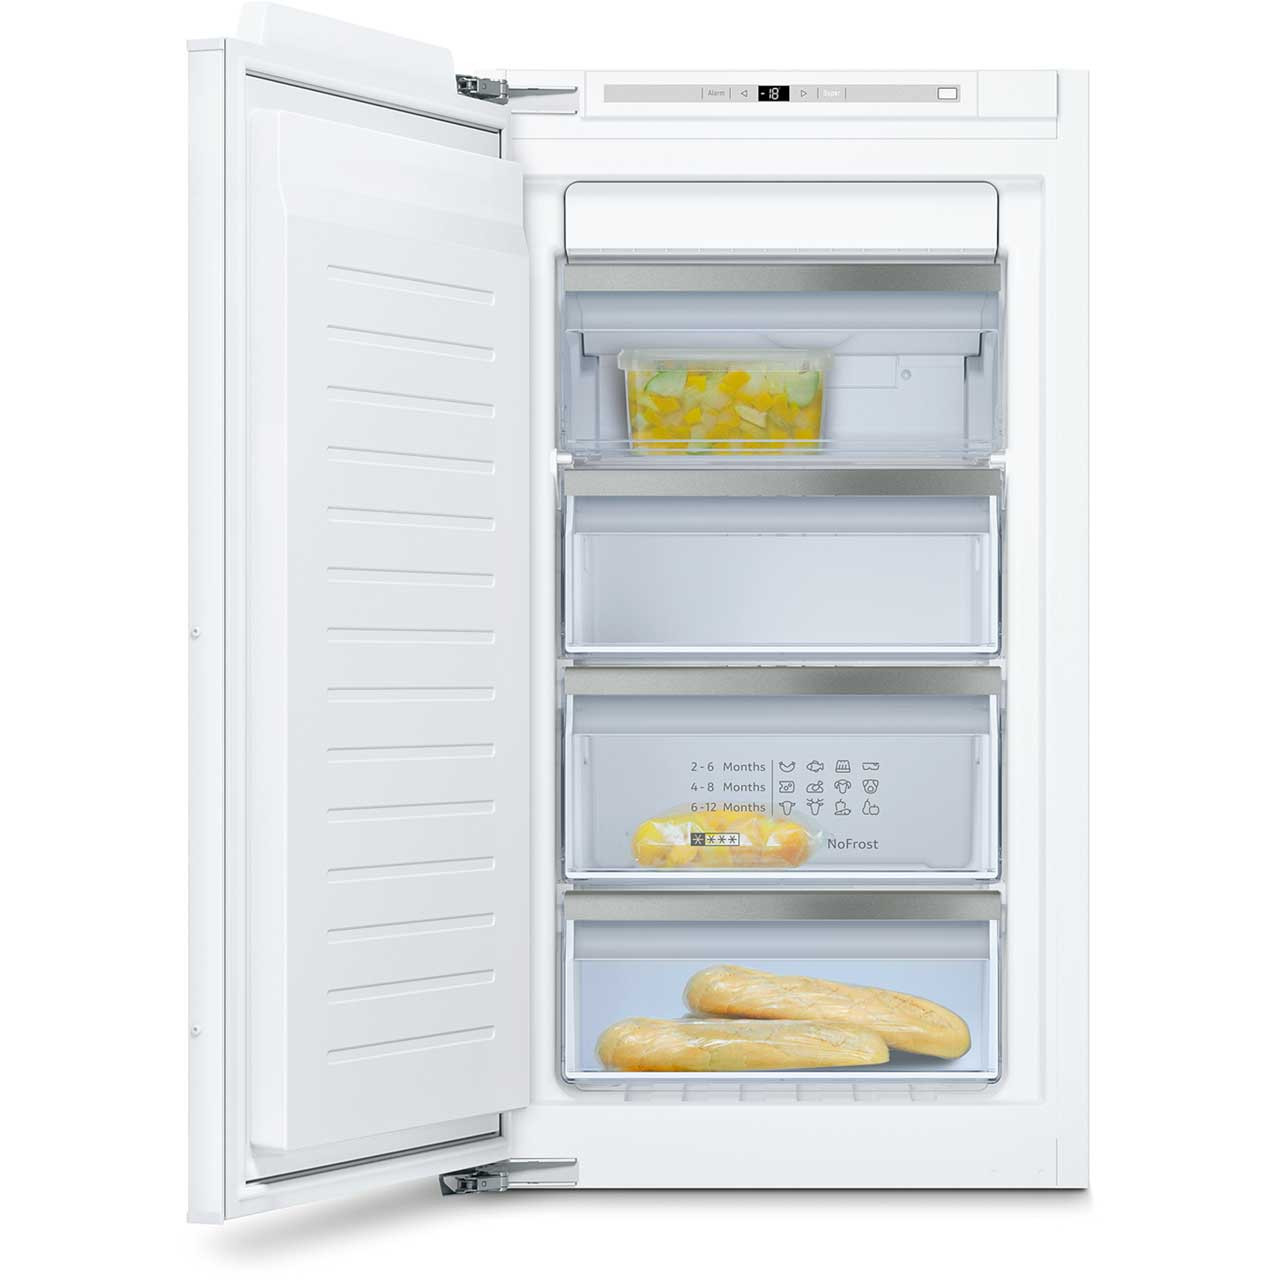 Neff N90 Built-In Fully Integrated Frost Free 102cm Freezer GI7313E30G